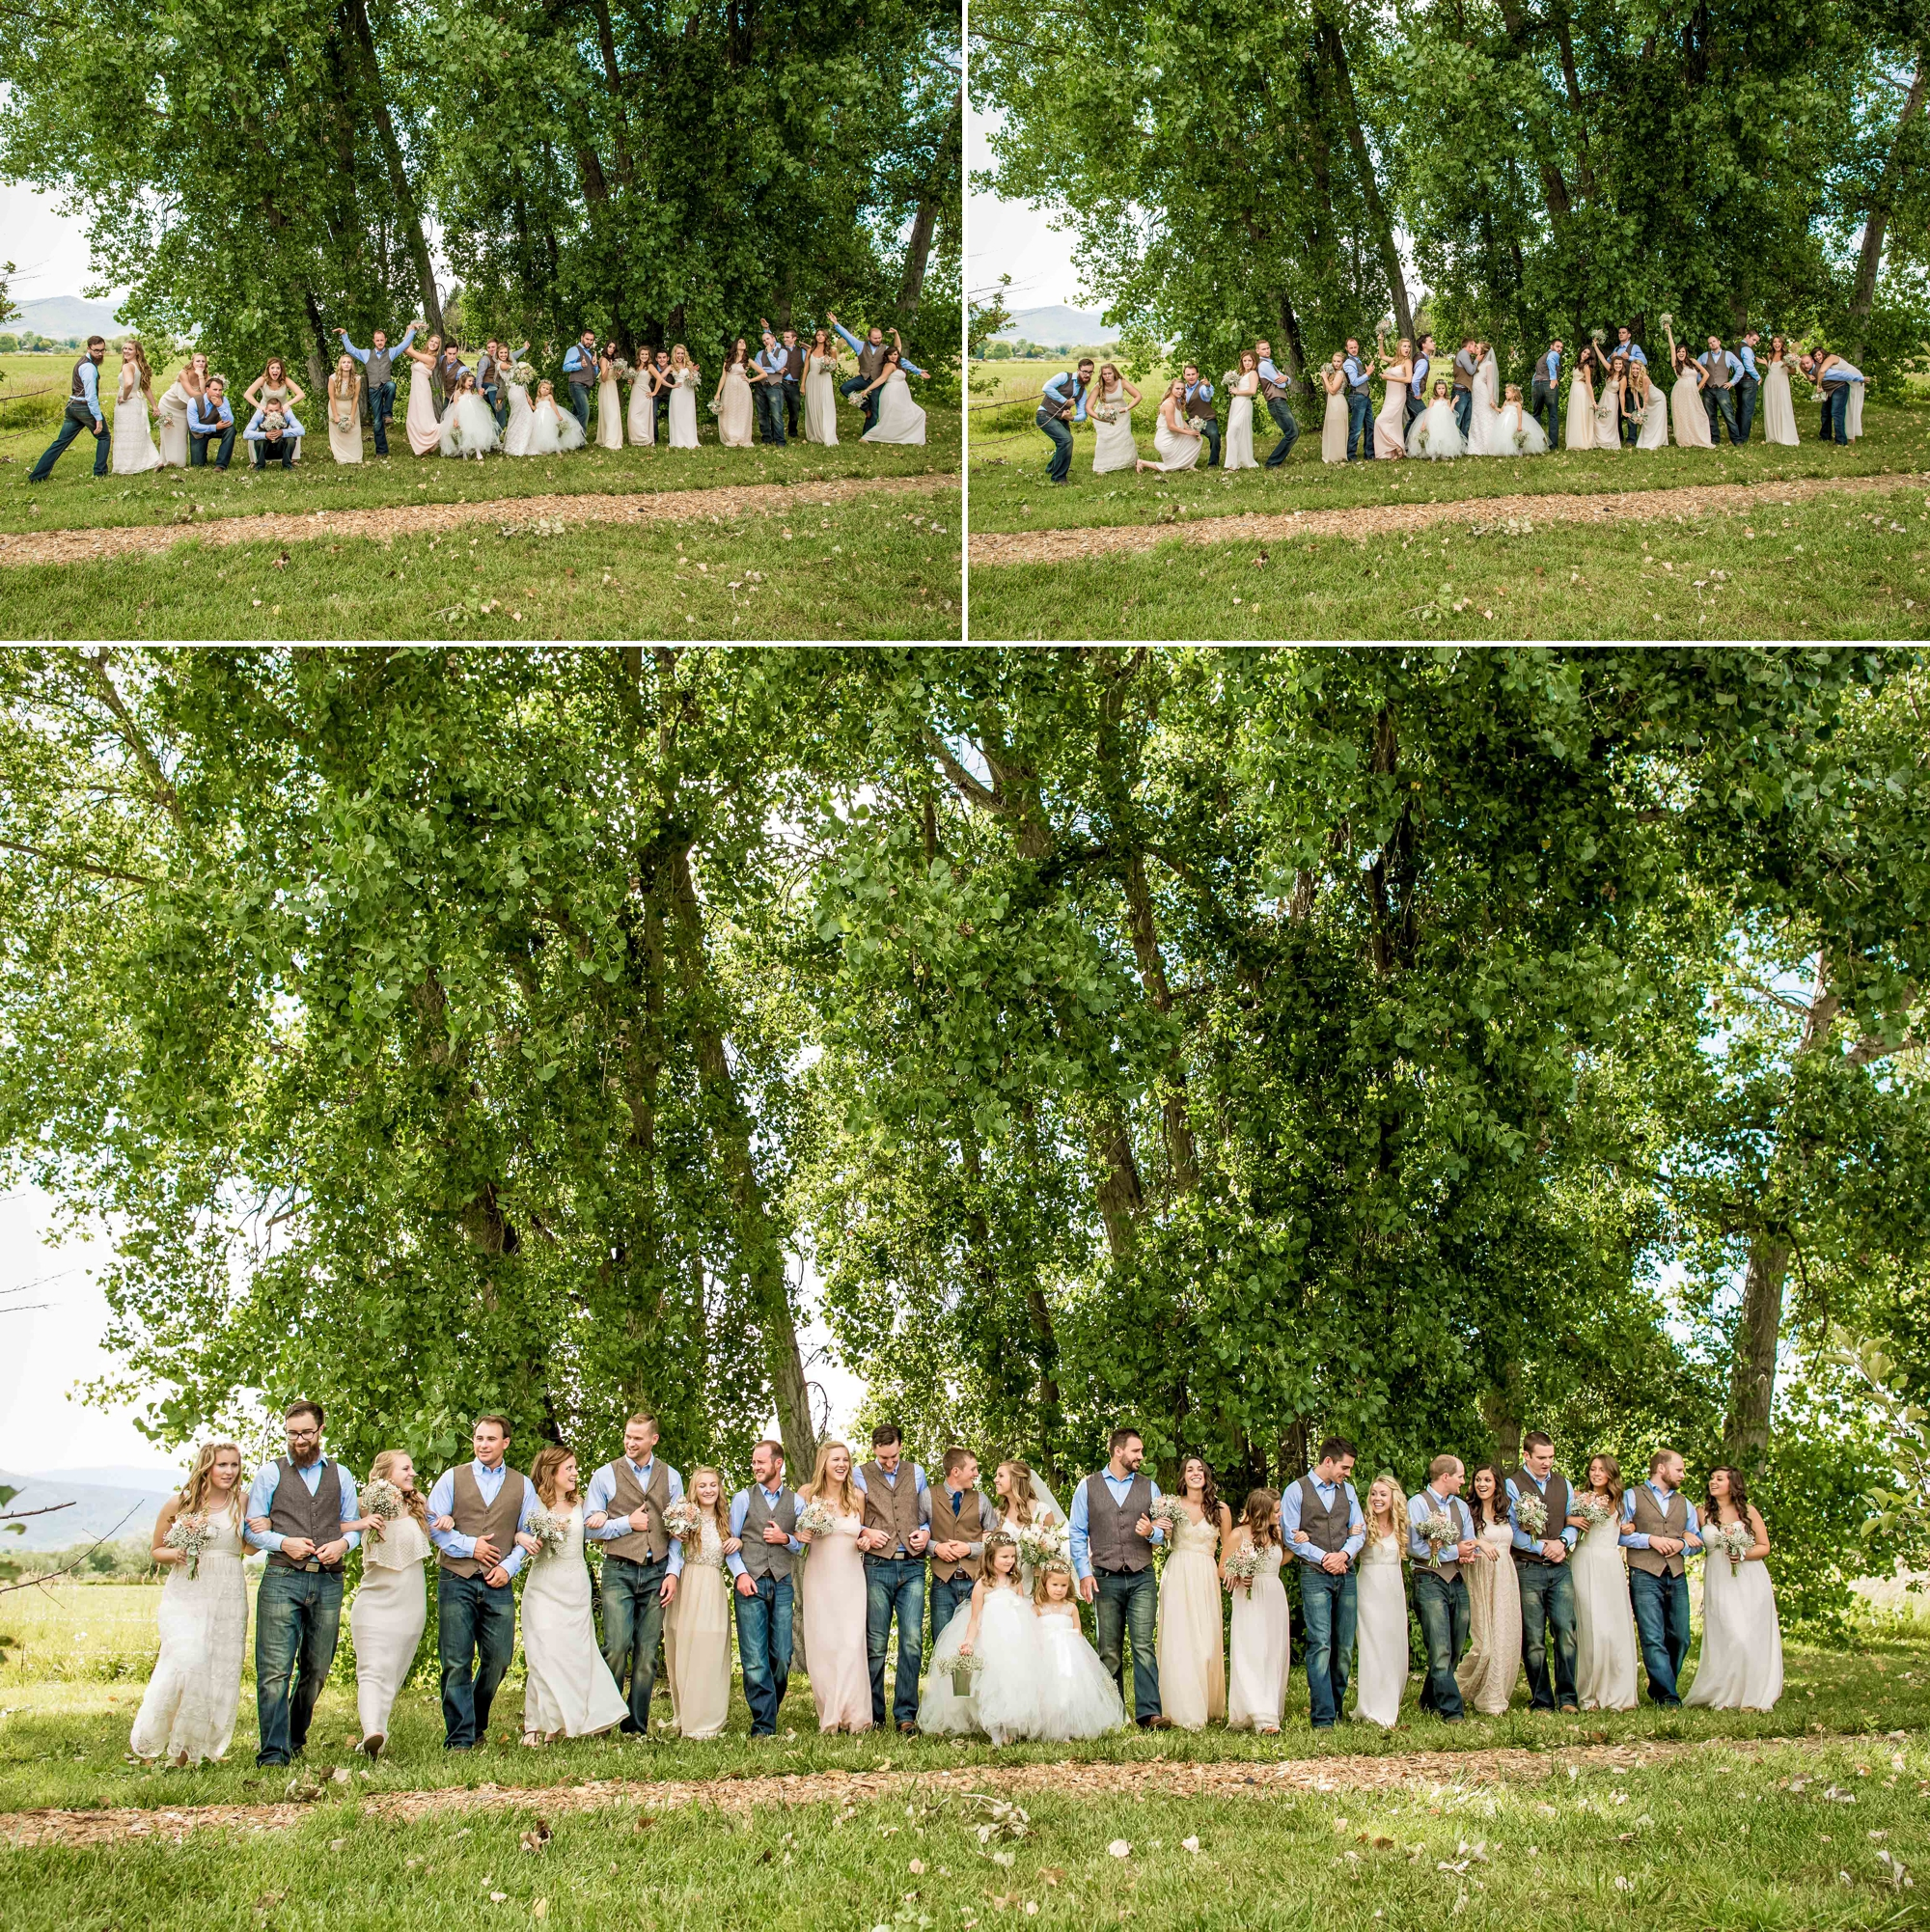 You counted correctly, 25 five bridesmaids, groomsman and flower girls! Such a great group to photograph!!